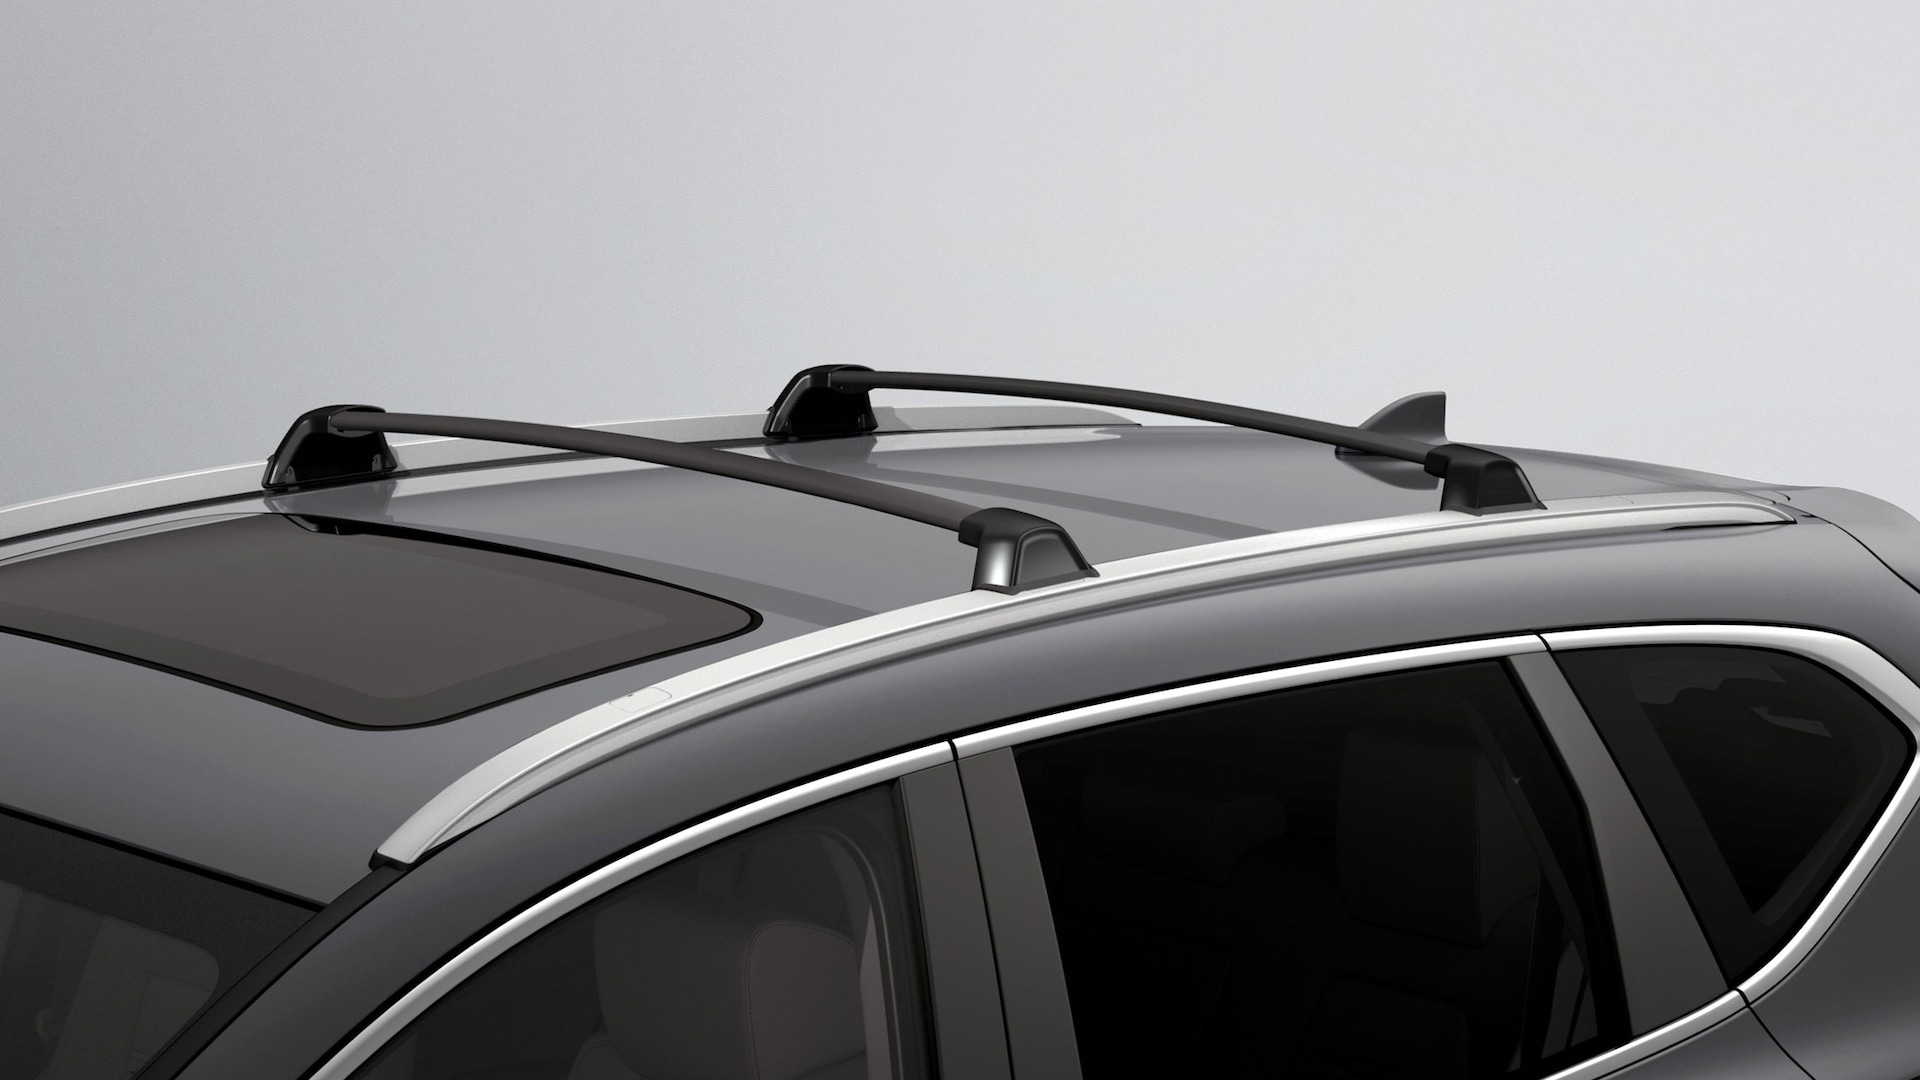 Honda Genuine Accessory roof rails and crossbars detail on the 2020 Honda CR-V in Sonic Gray Pearl.